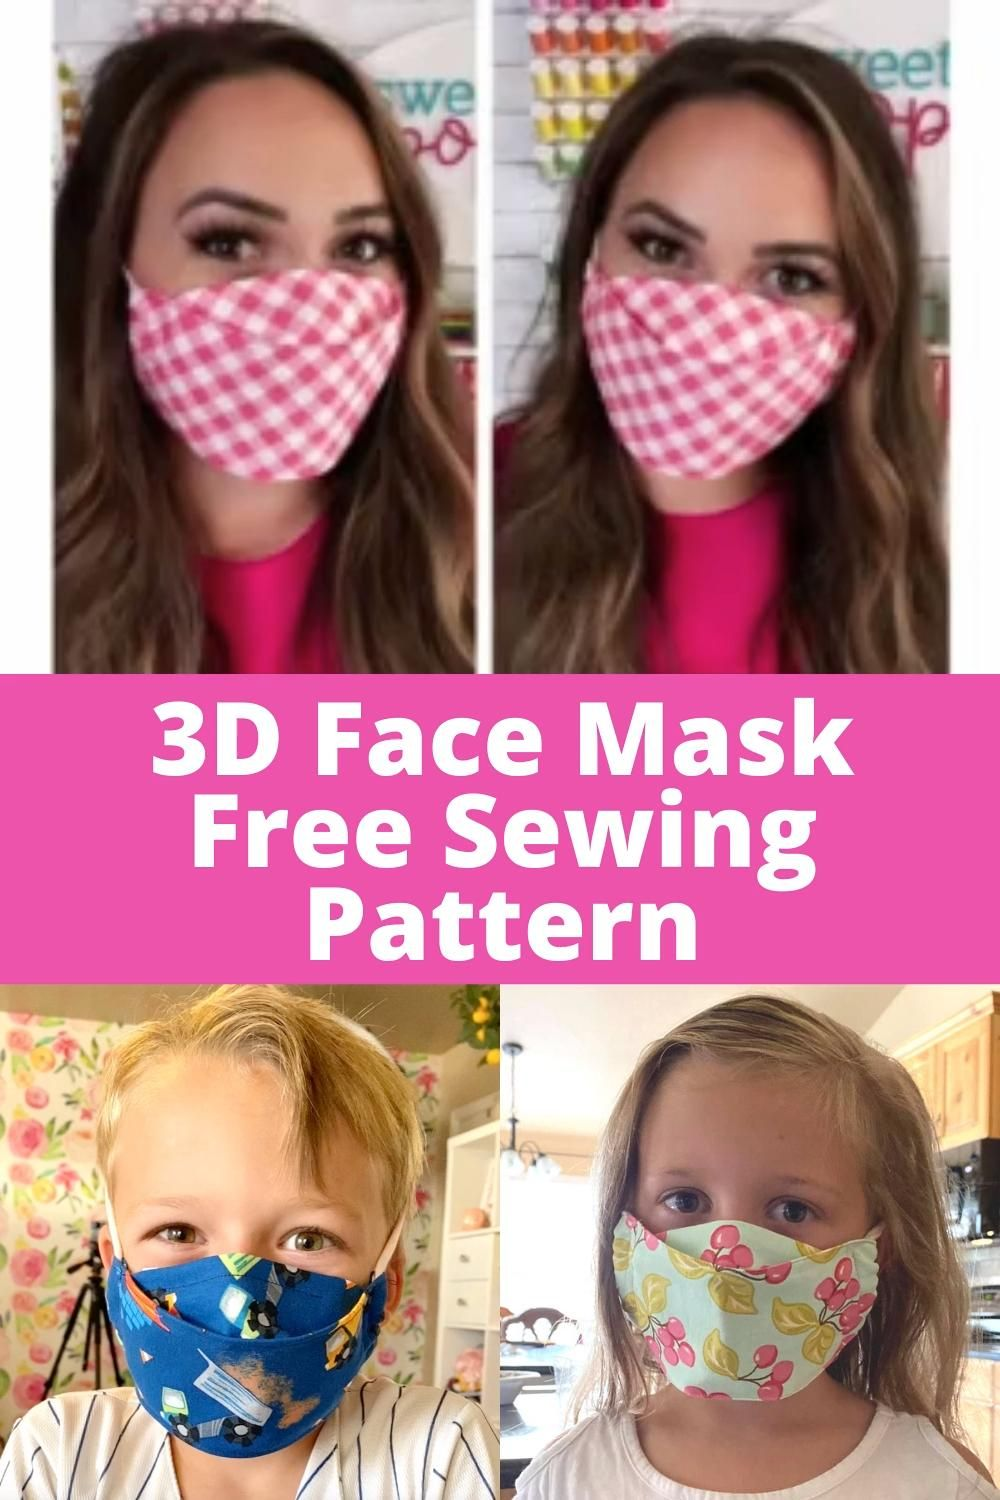 FREE Sewing Pattern for 3D Face Mask – DİKİŞ